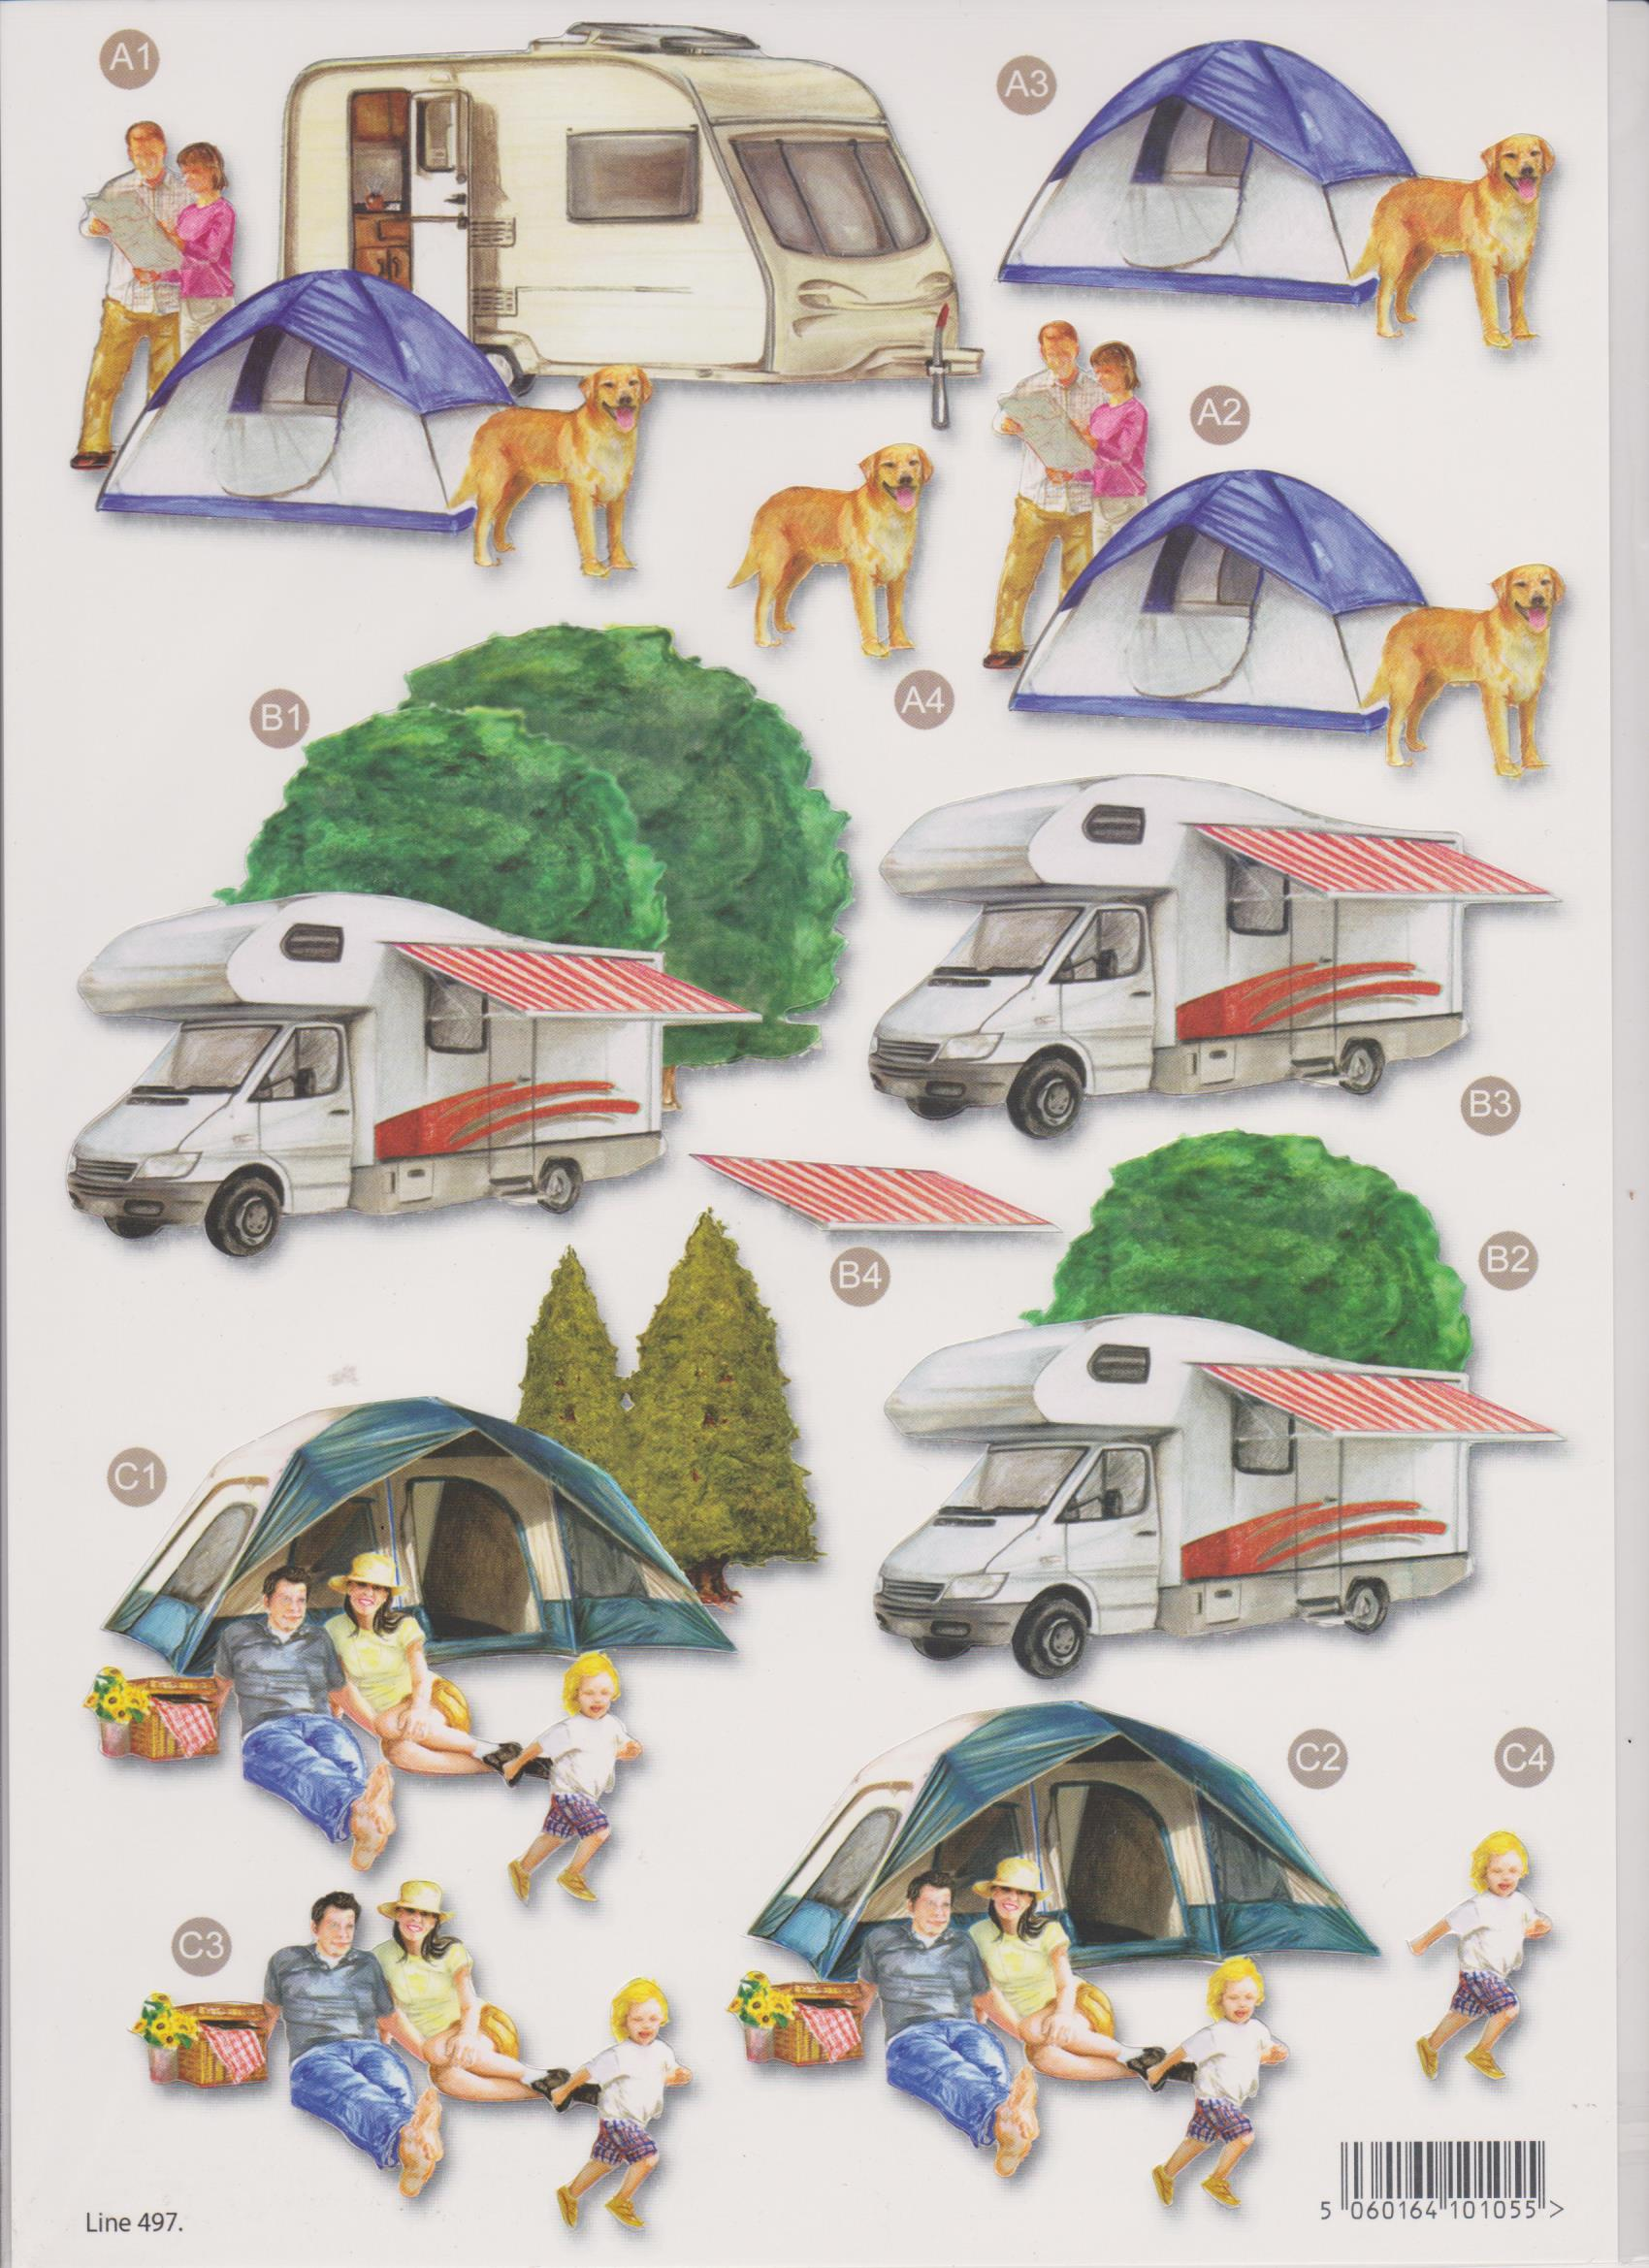 Camping Die Cut Decoupage 497 - Card Making & Craft Supplies